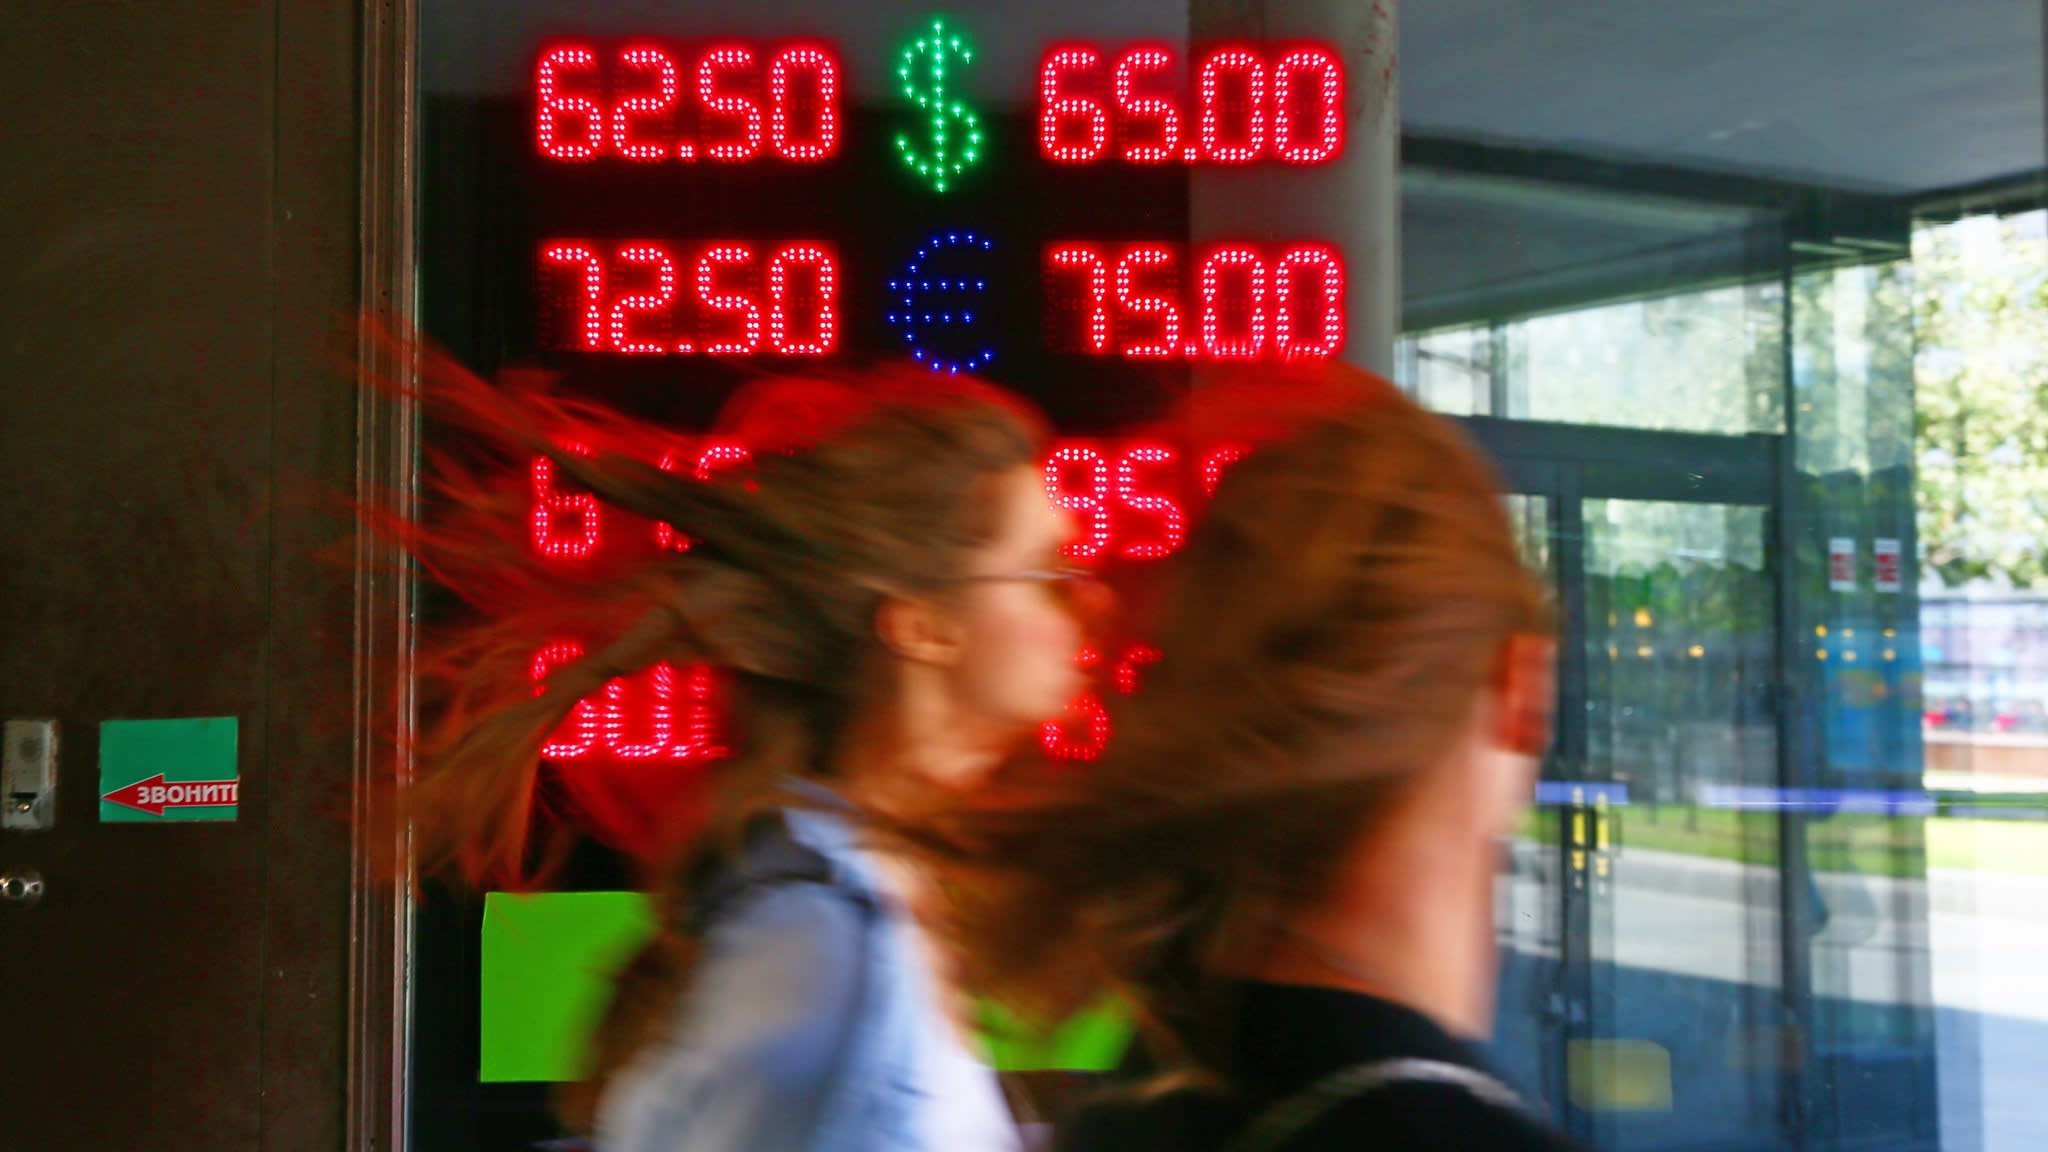 Russian shares and rouble hit by US sanctions